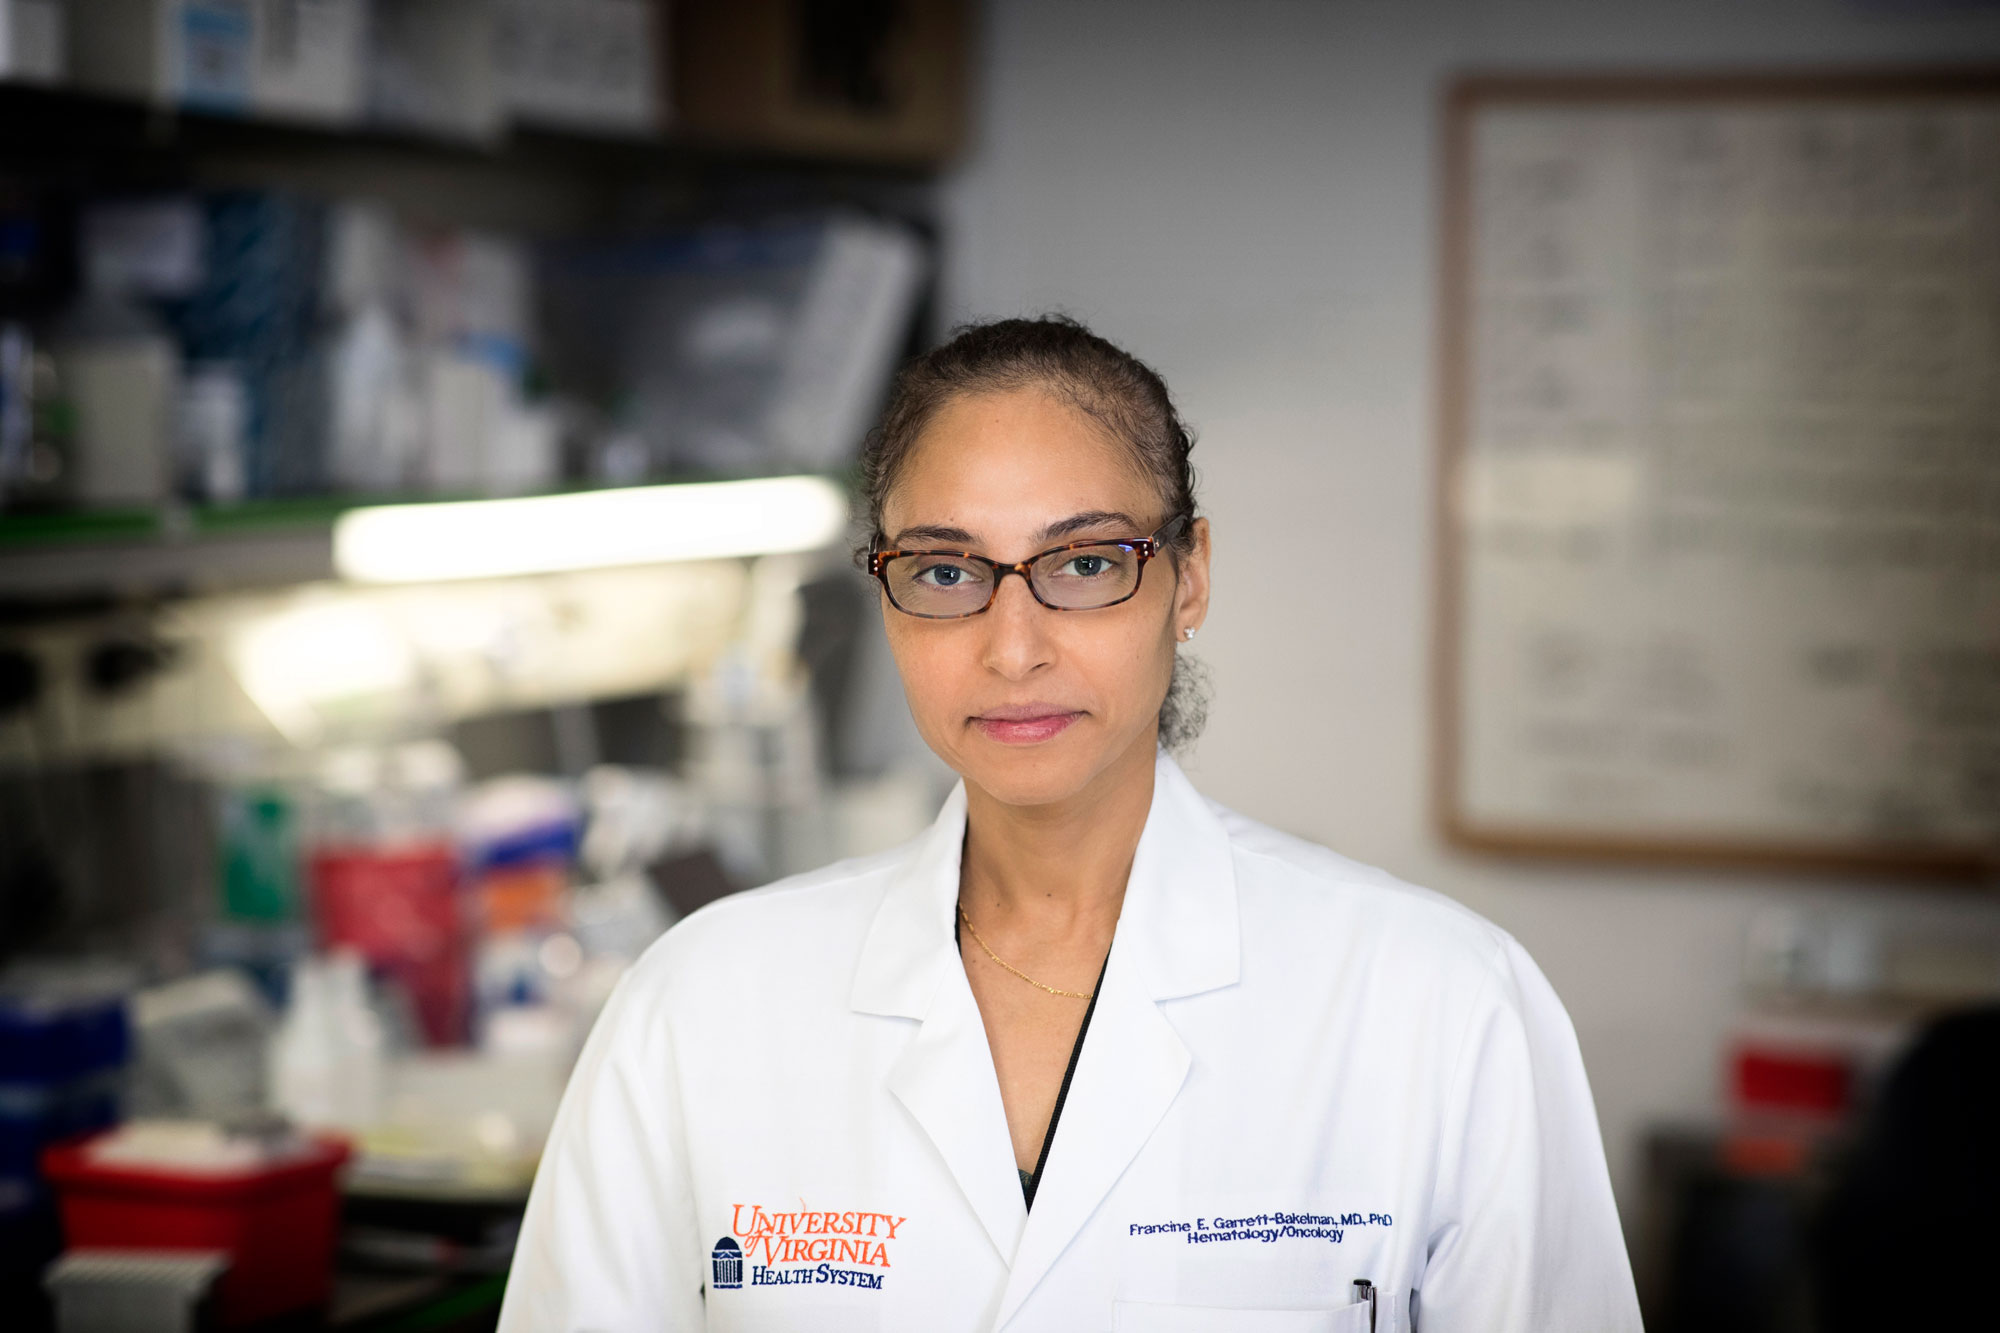 Francine Garrett-Bakelman, now a cancer doctor and researcher at UVA, helped NASA compare blood samples from astronaut Scott Kelly and his identical twin, Mark. (Photo by Dan Addison, University Communications)